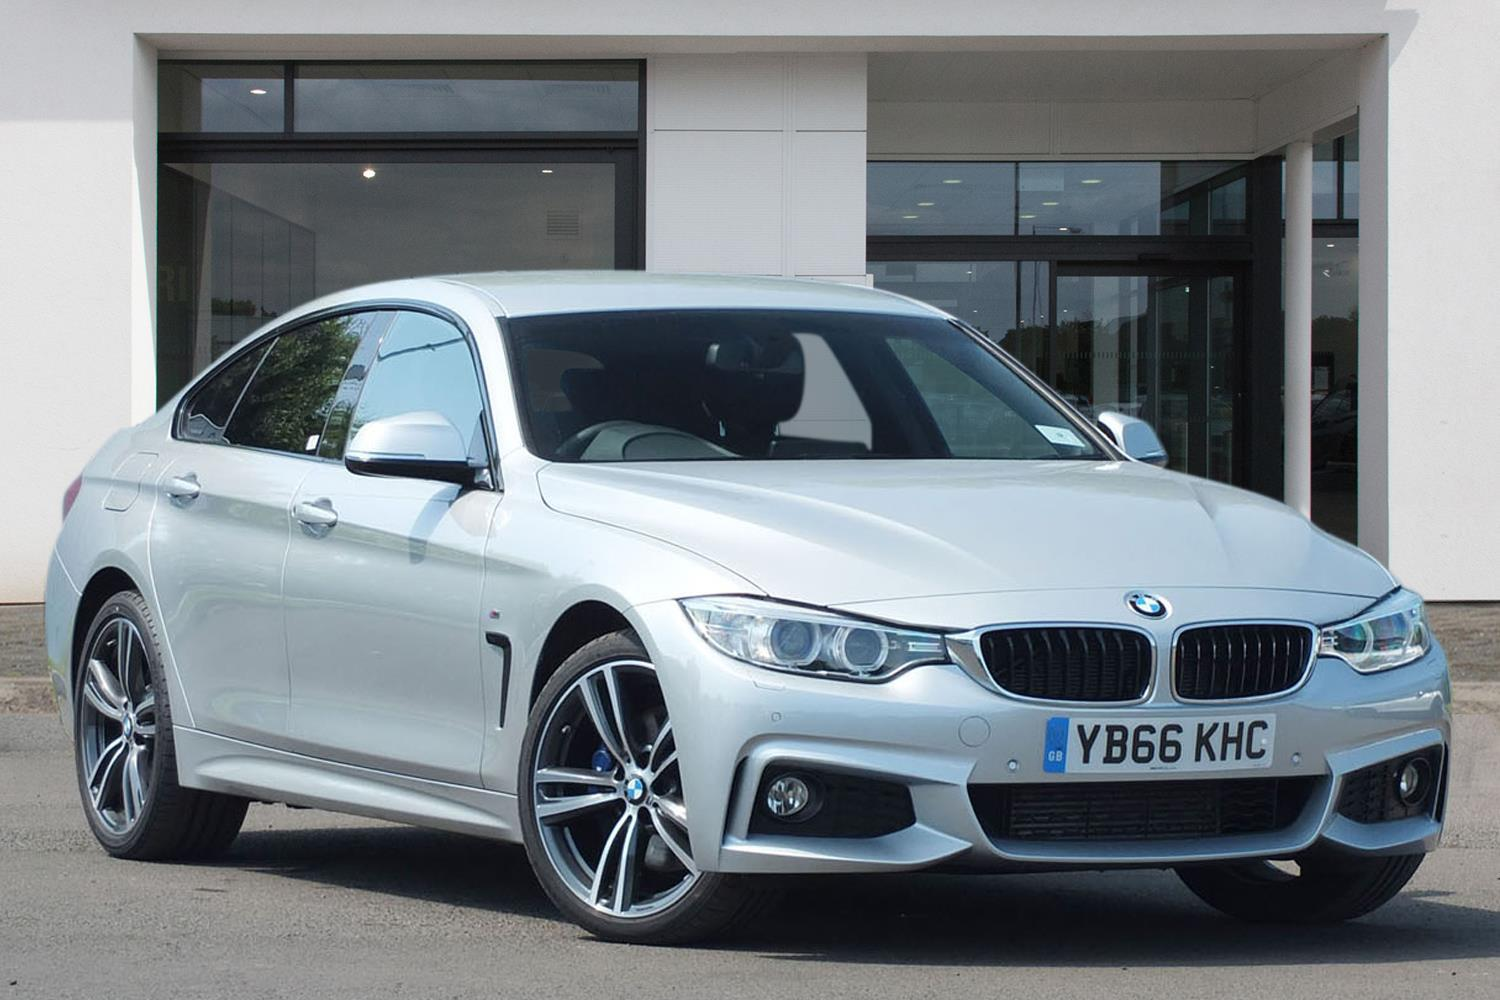 BMW 4 Series Gran Coupé YB66KHC - Image 1